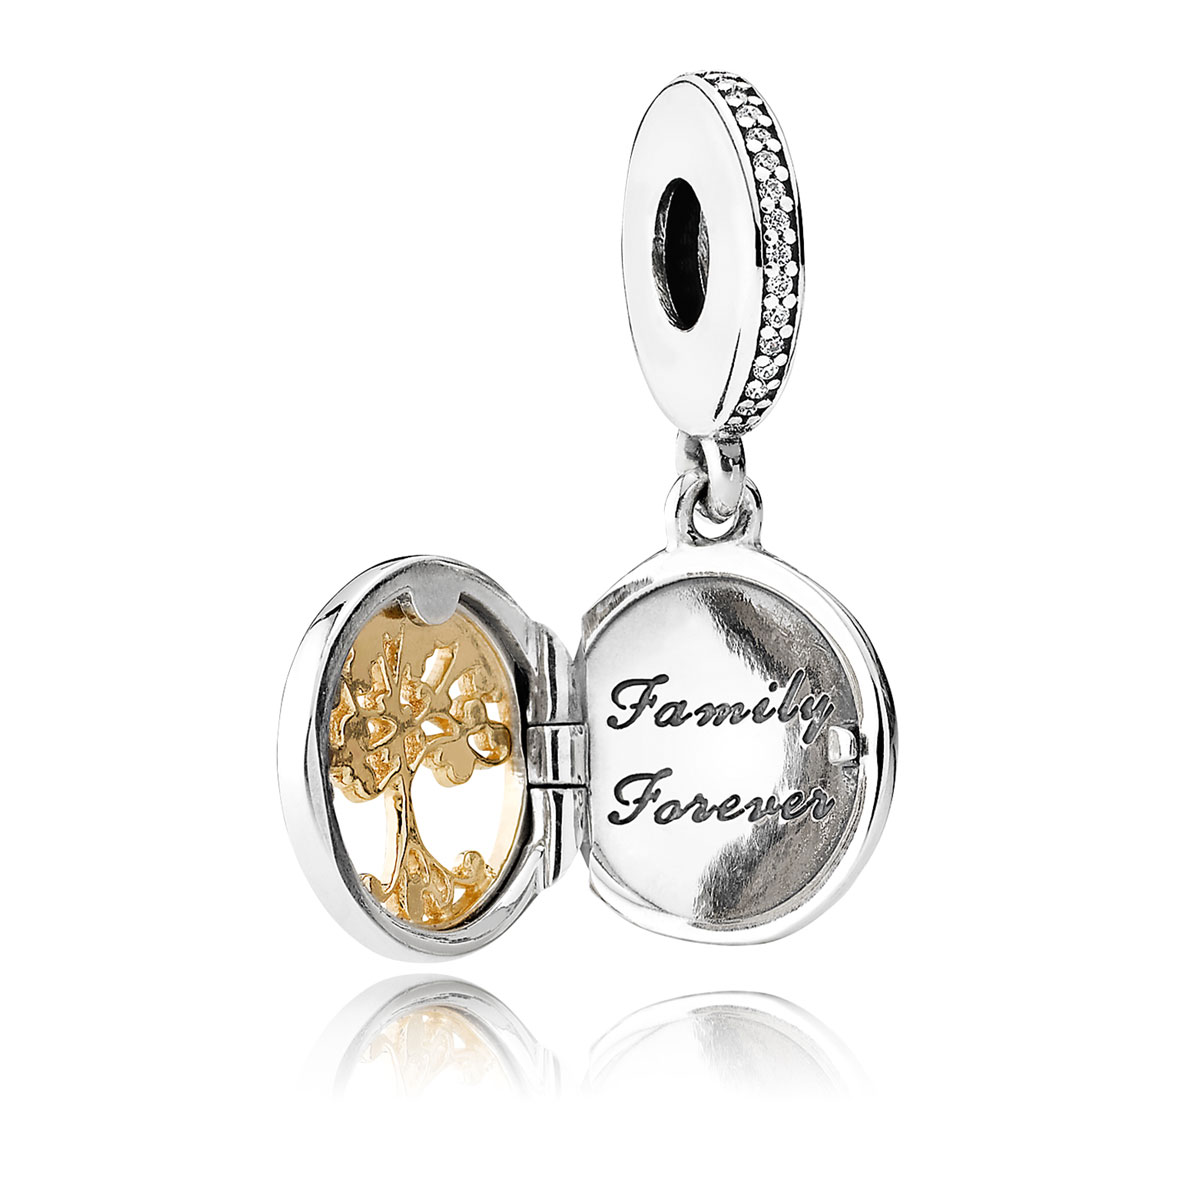 739afe575aa00d Charms Pandora : Pandora Jewelry Collection | rings, charms ...